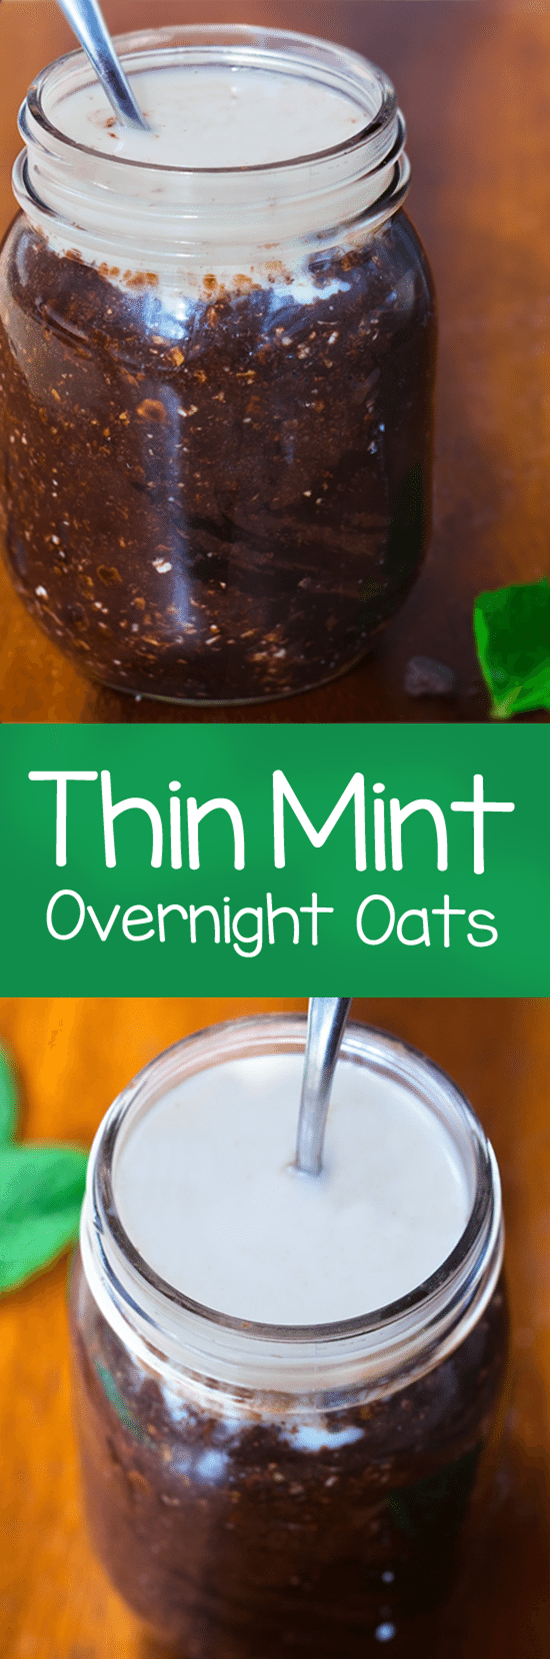 If you love Girl Scout cookies, these overnight oats were made with you in mind.